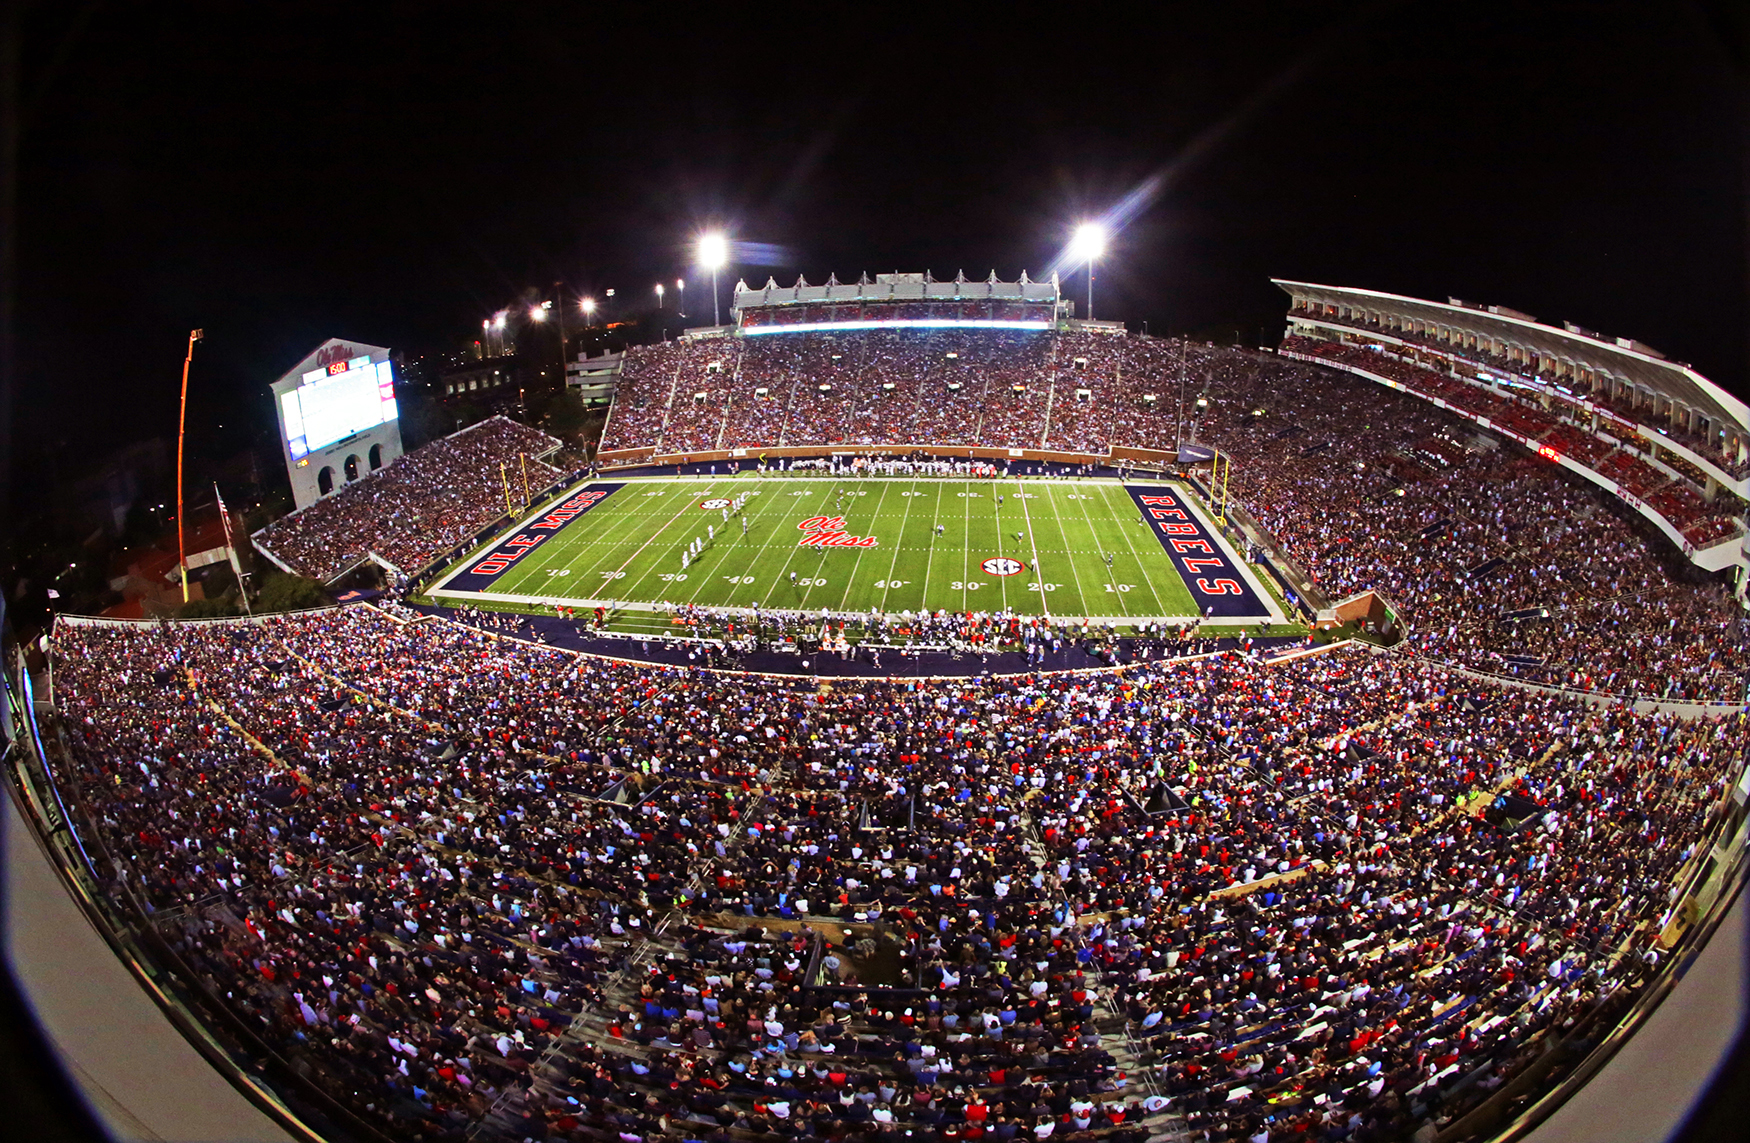 C Spire and the Ole Miss Athletic Department have installed a new state-of-the-art Wi-Fi network in the 60,580 seat-capacity Vaught Hemingway stadium for the 2014 college football season. (Photo: Business Wire)